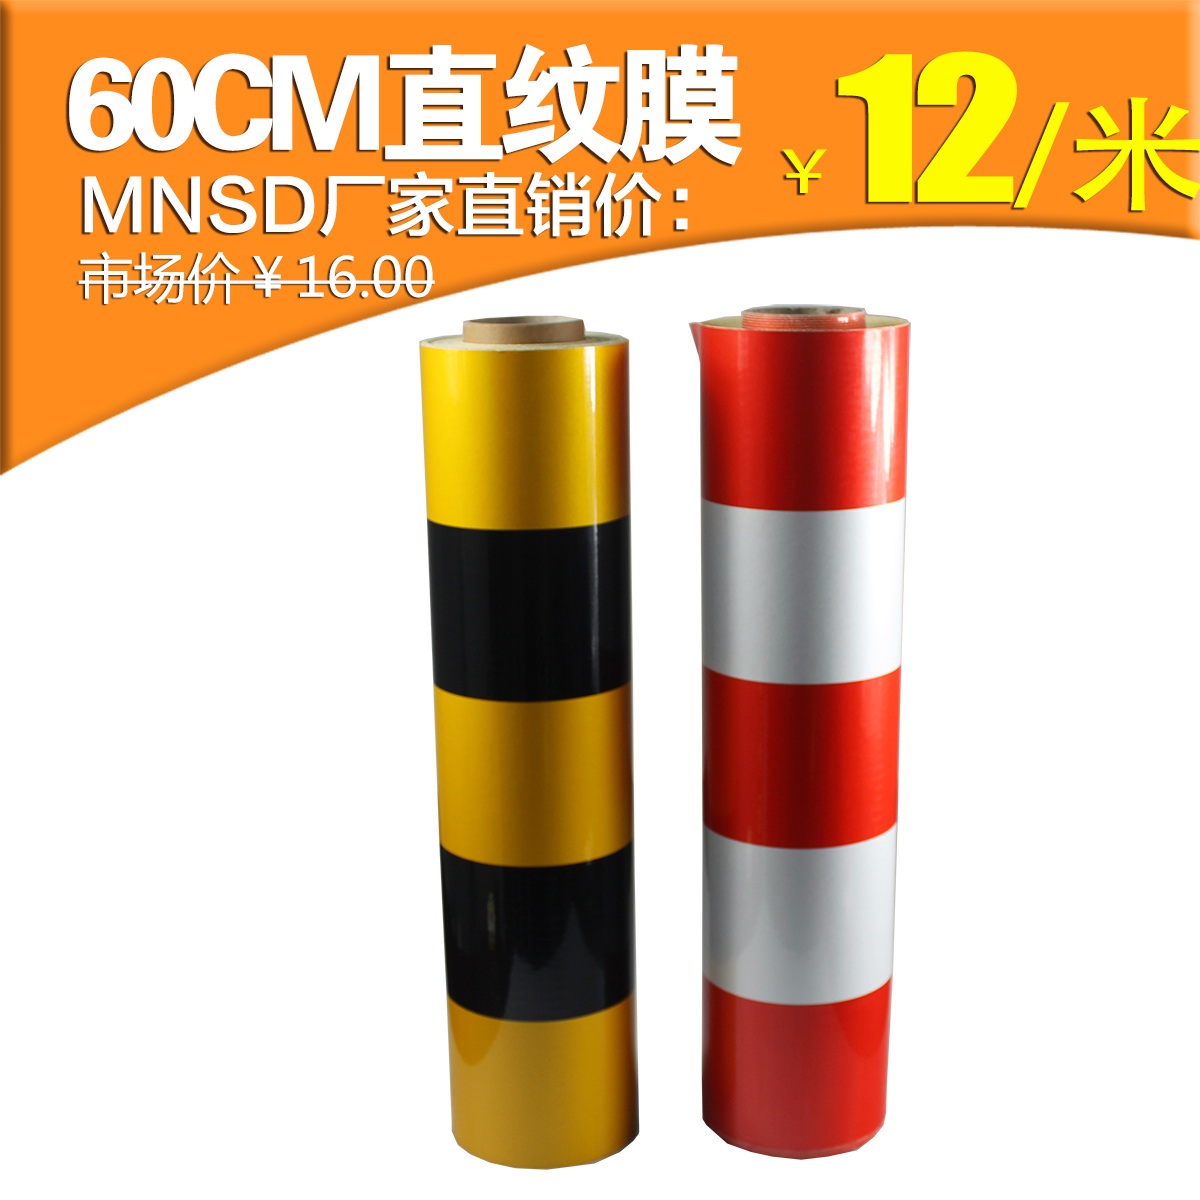 Mnsd 60CM reflective warning tape warning tape warning tape reflective stickers reflective traffic safety reflective film reflective tape